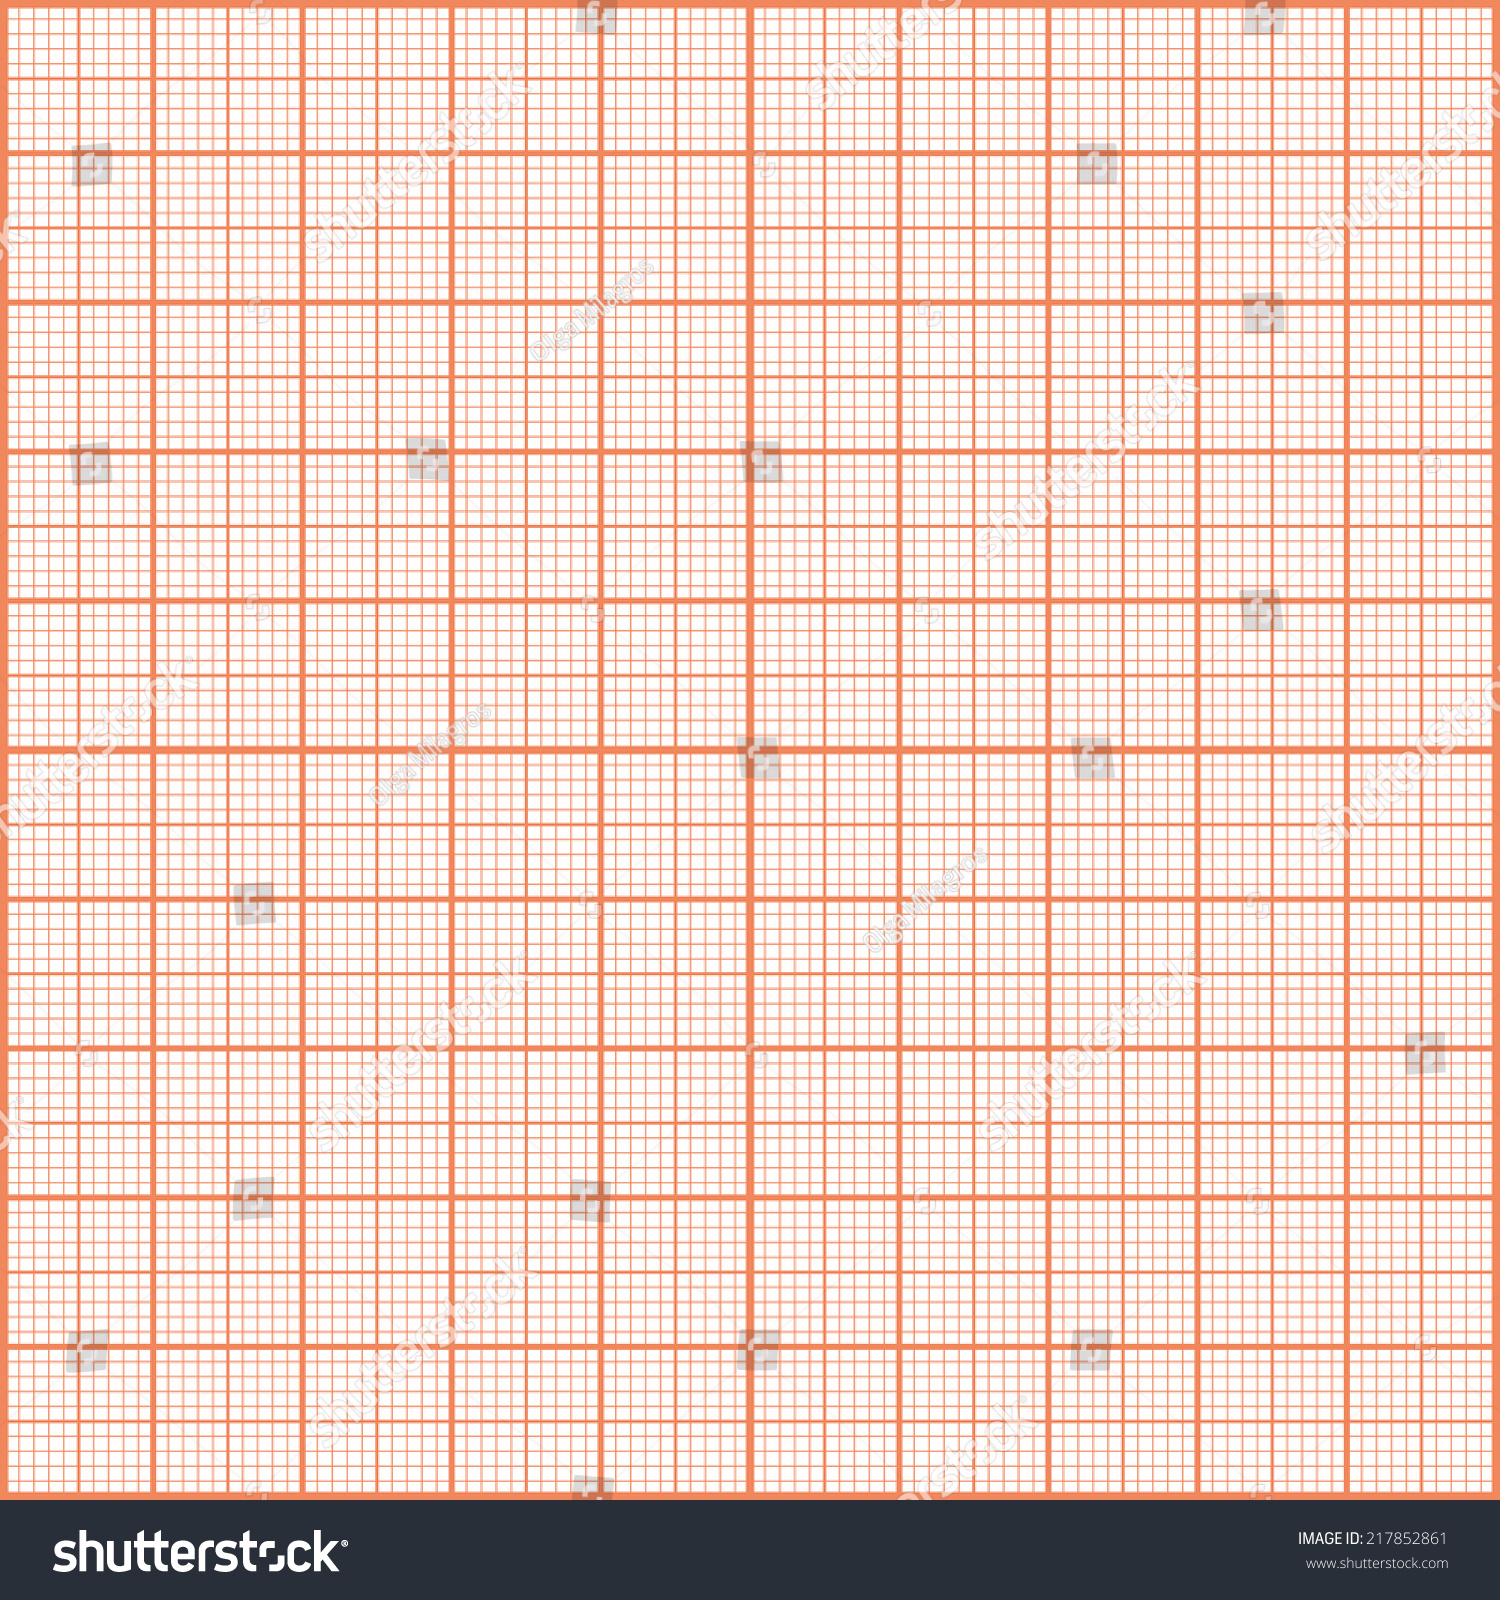 worksheet Graph Paper To Print red print texture graph paper stock vector 217852861 shutterstock paper